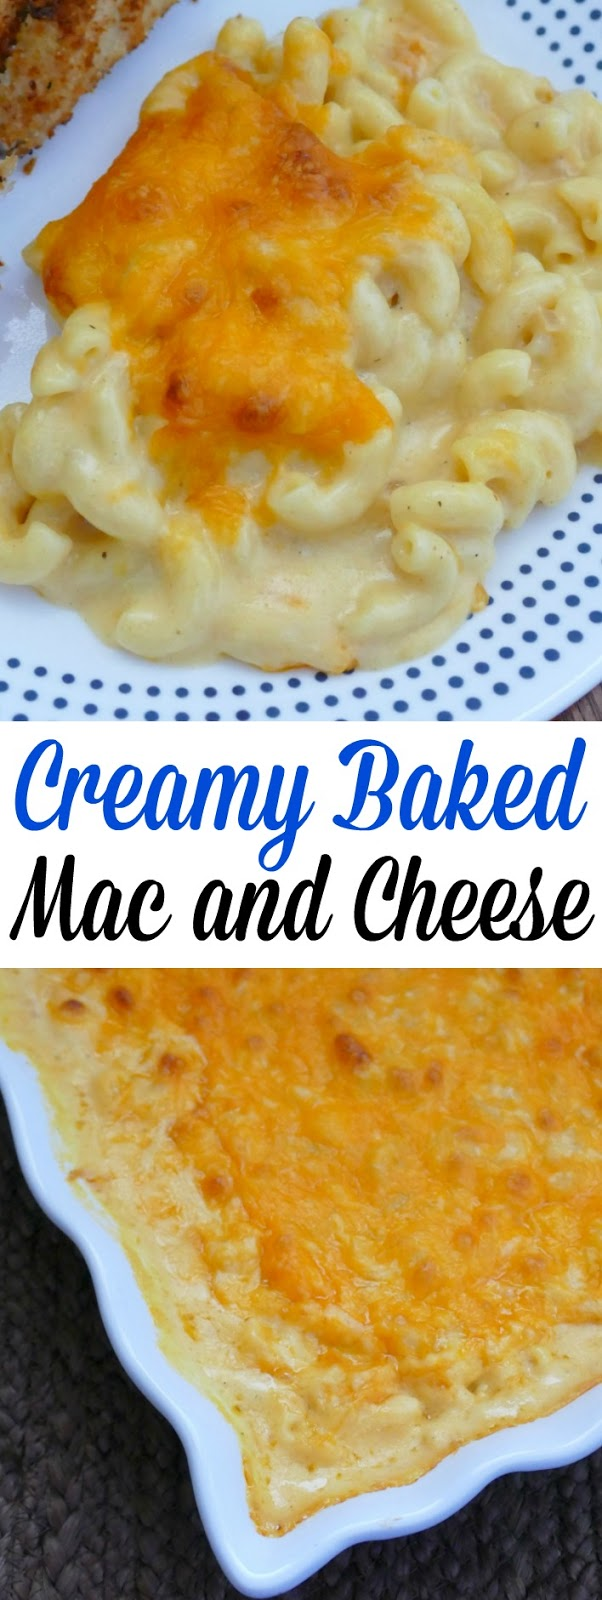 This delicious 3 cheese baked macaroni and cheese is a perfect winter comfort food! Great for Sunday dinner, Thanksgiving, Christmas or any holiday meal! This will cure any soul food craving!